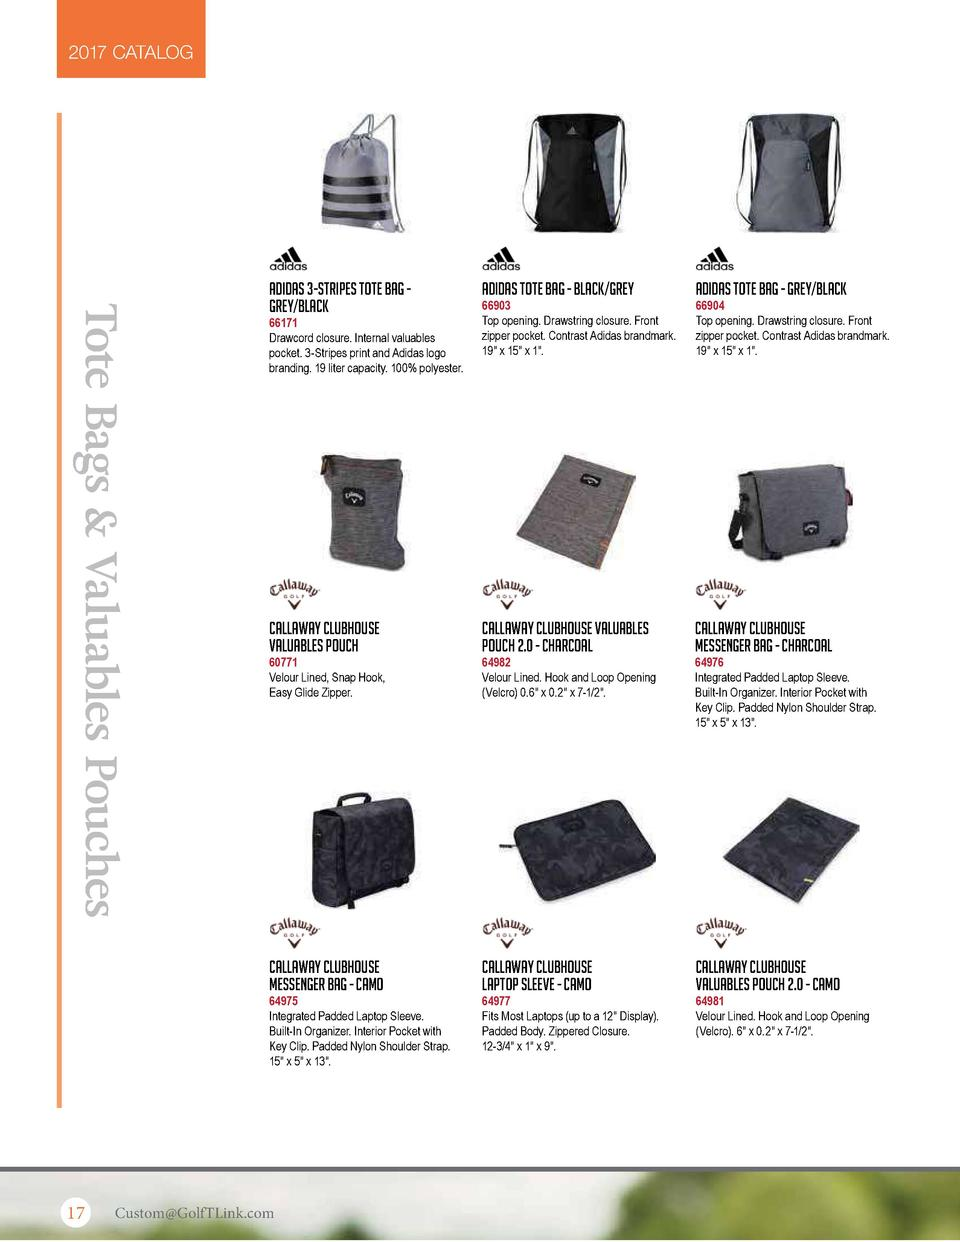 2017 CATALOG  Tote Bags   Valuables Pouches  Adidas 3-Stripes Tote Bag Grey Black  Adidas Tote Bag - Black Grey  Adidas To...